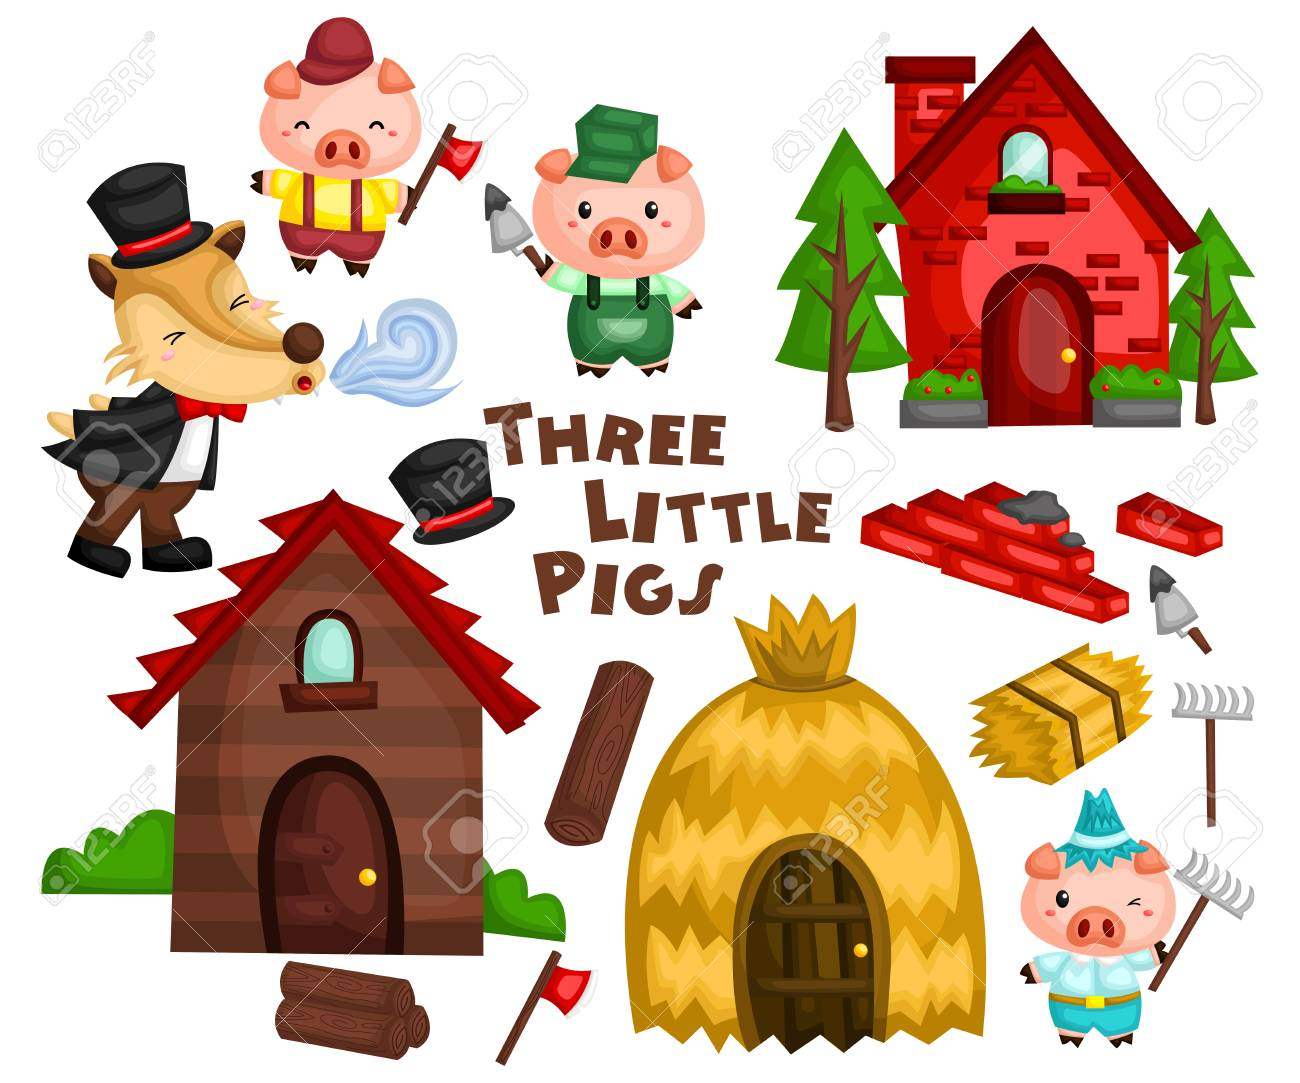 the three little pigs in a set ready to be used - 112509884